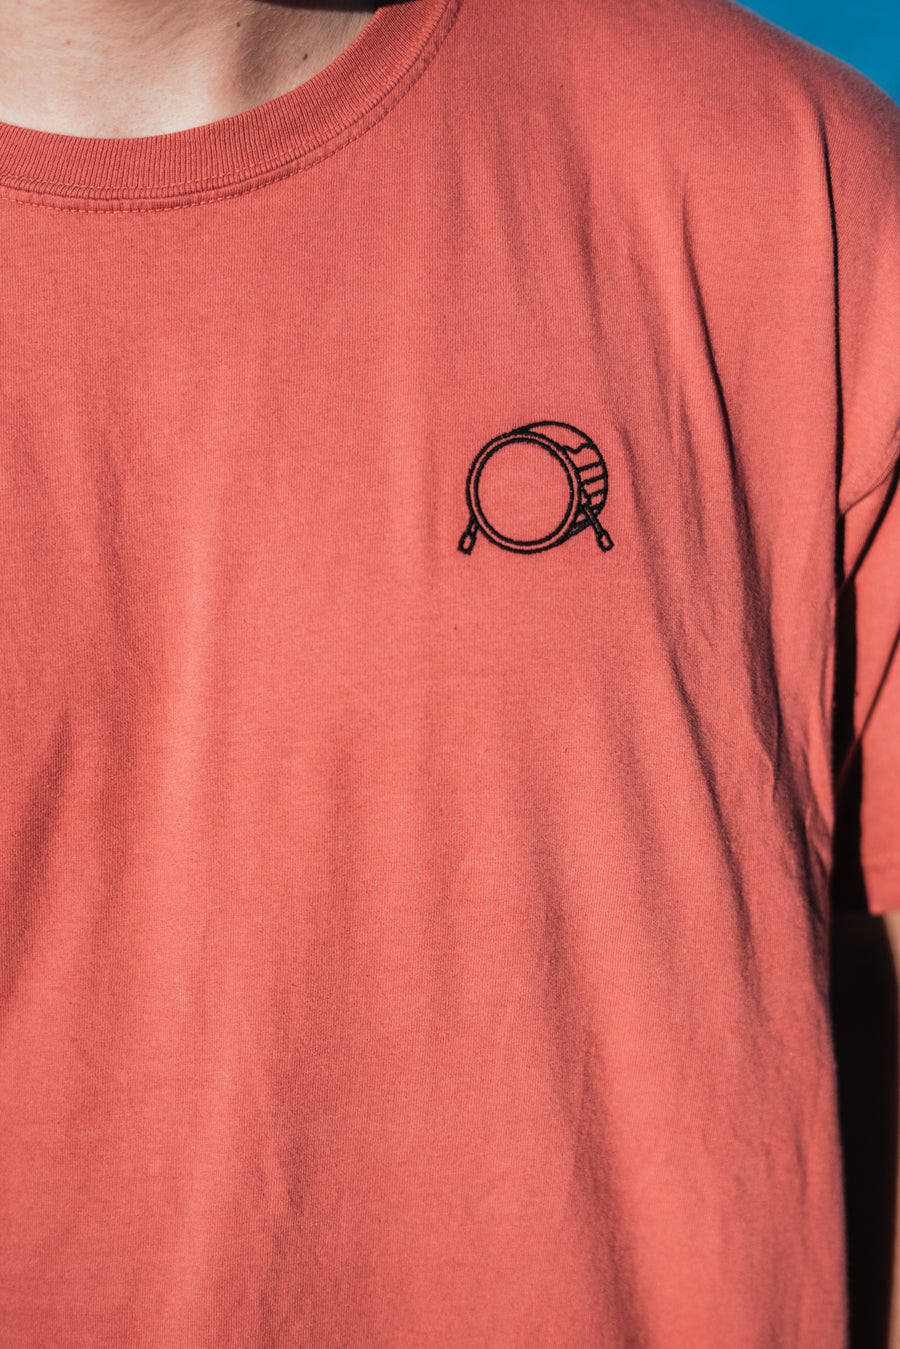 1 OF 1 Embroidered Signature Logo Comfort Colors Tee